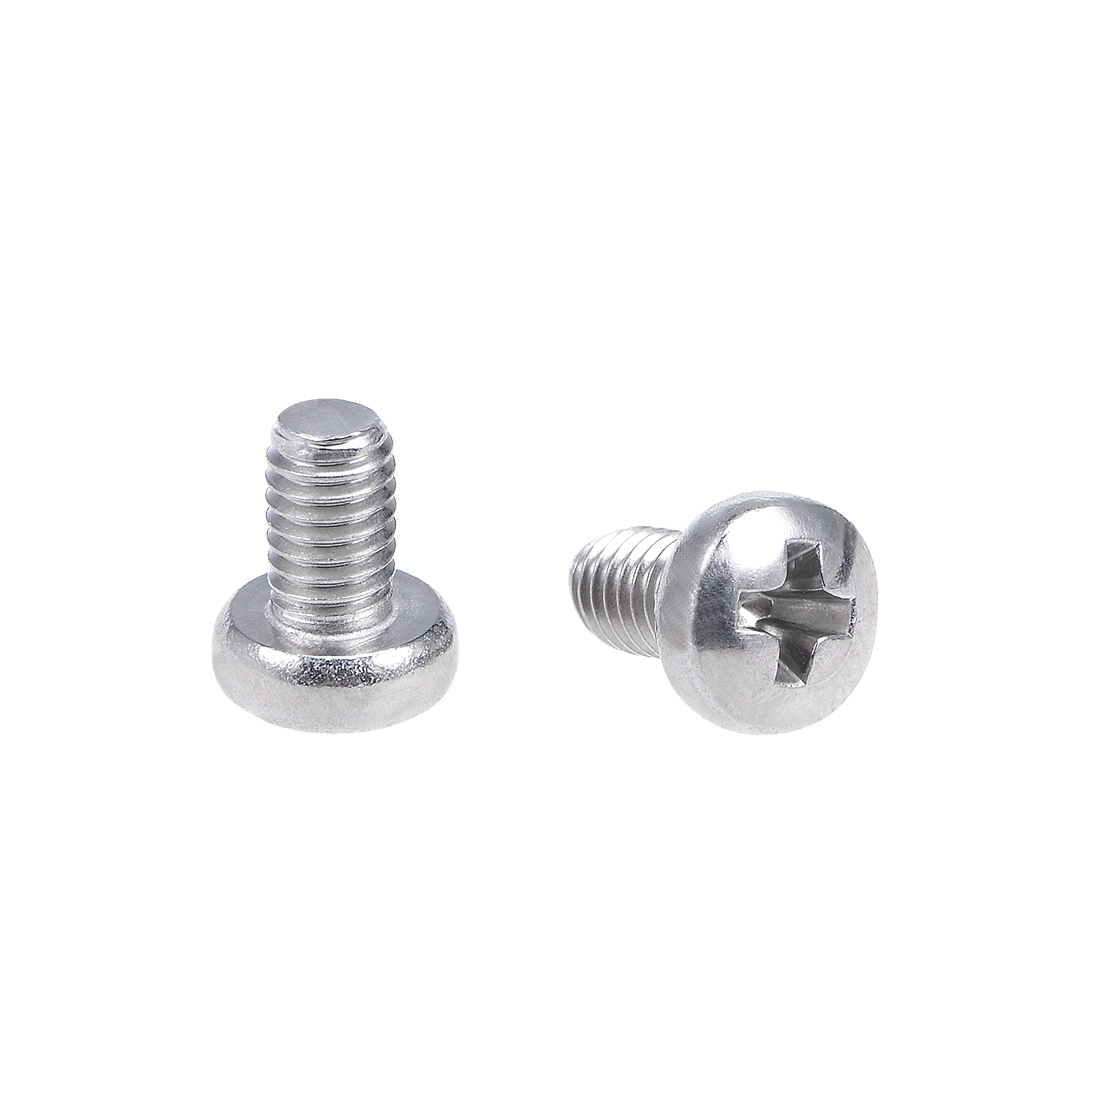 uxcell Machine Screws Cross Head Screw 304 Stainless Steel Fasteners Bolts <font><b>M3x5mm</b></font> 30Pcs image